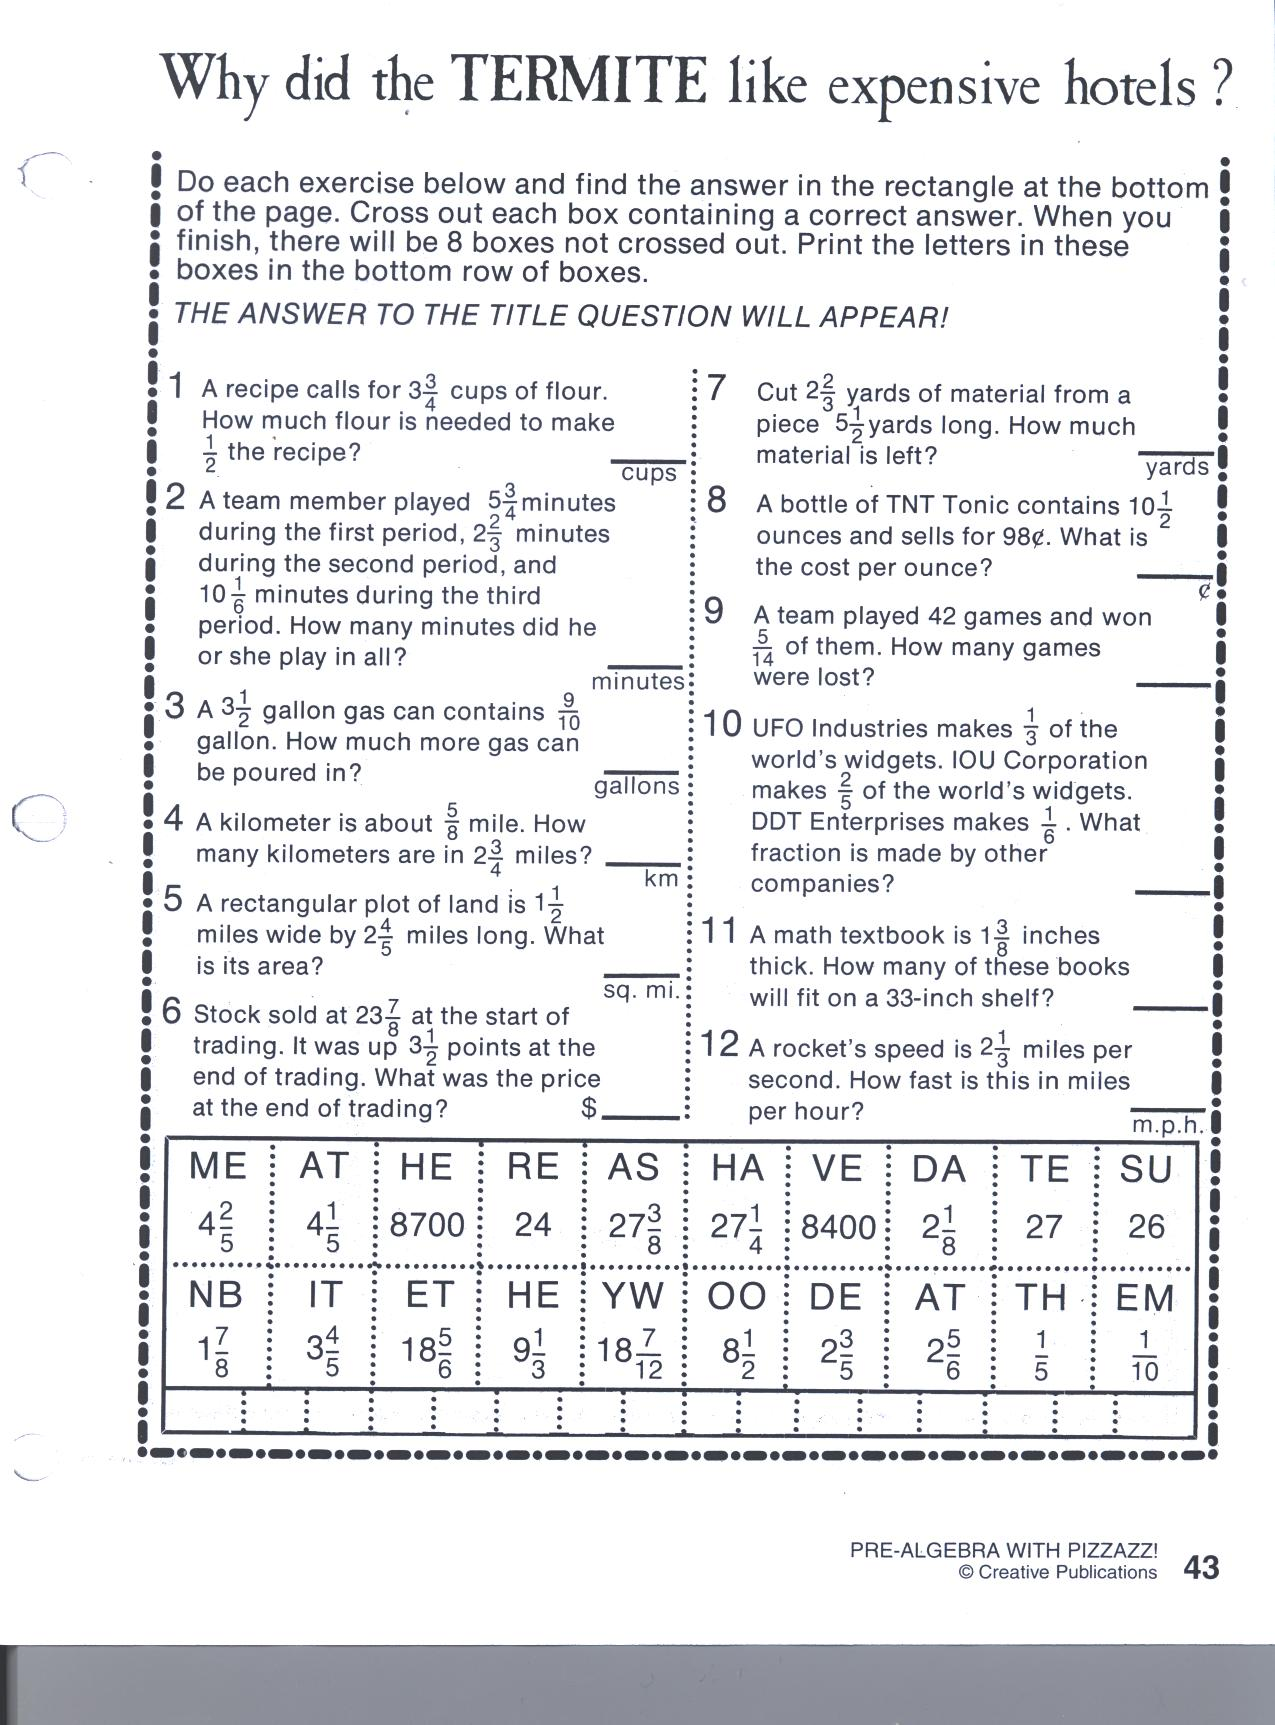 Pizzazz Worksheet Answers Sharebrowse – Algebra with Pizzazz Worksheets